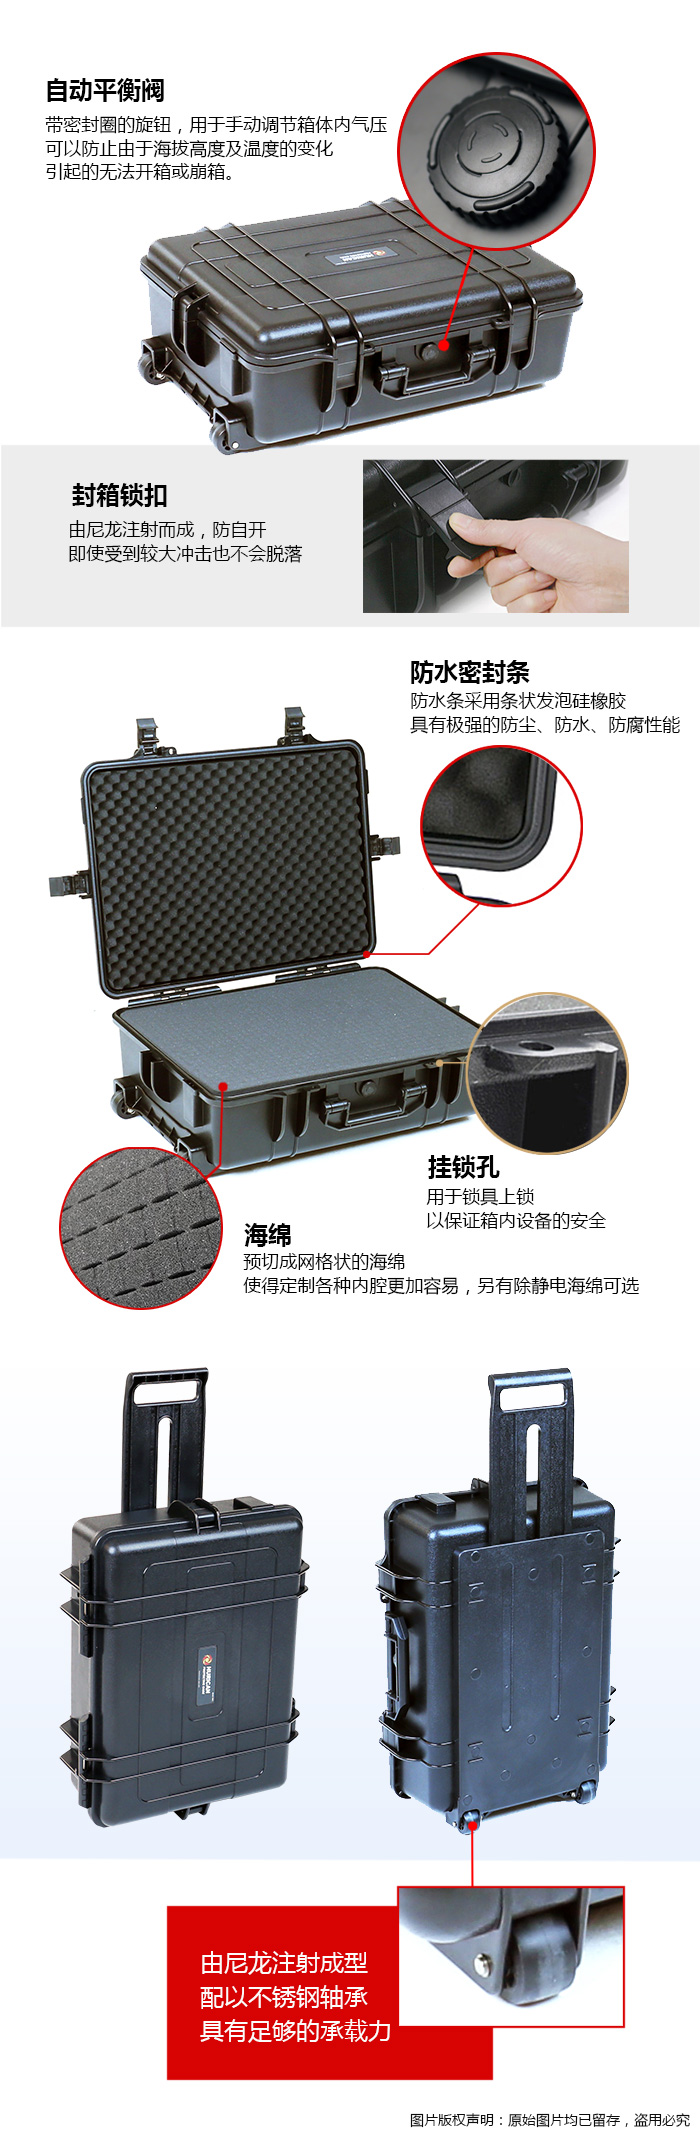 waterproof_cases_37-8-1_d